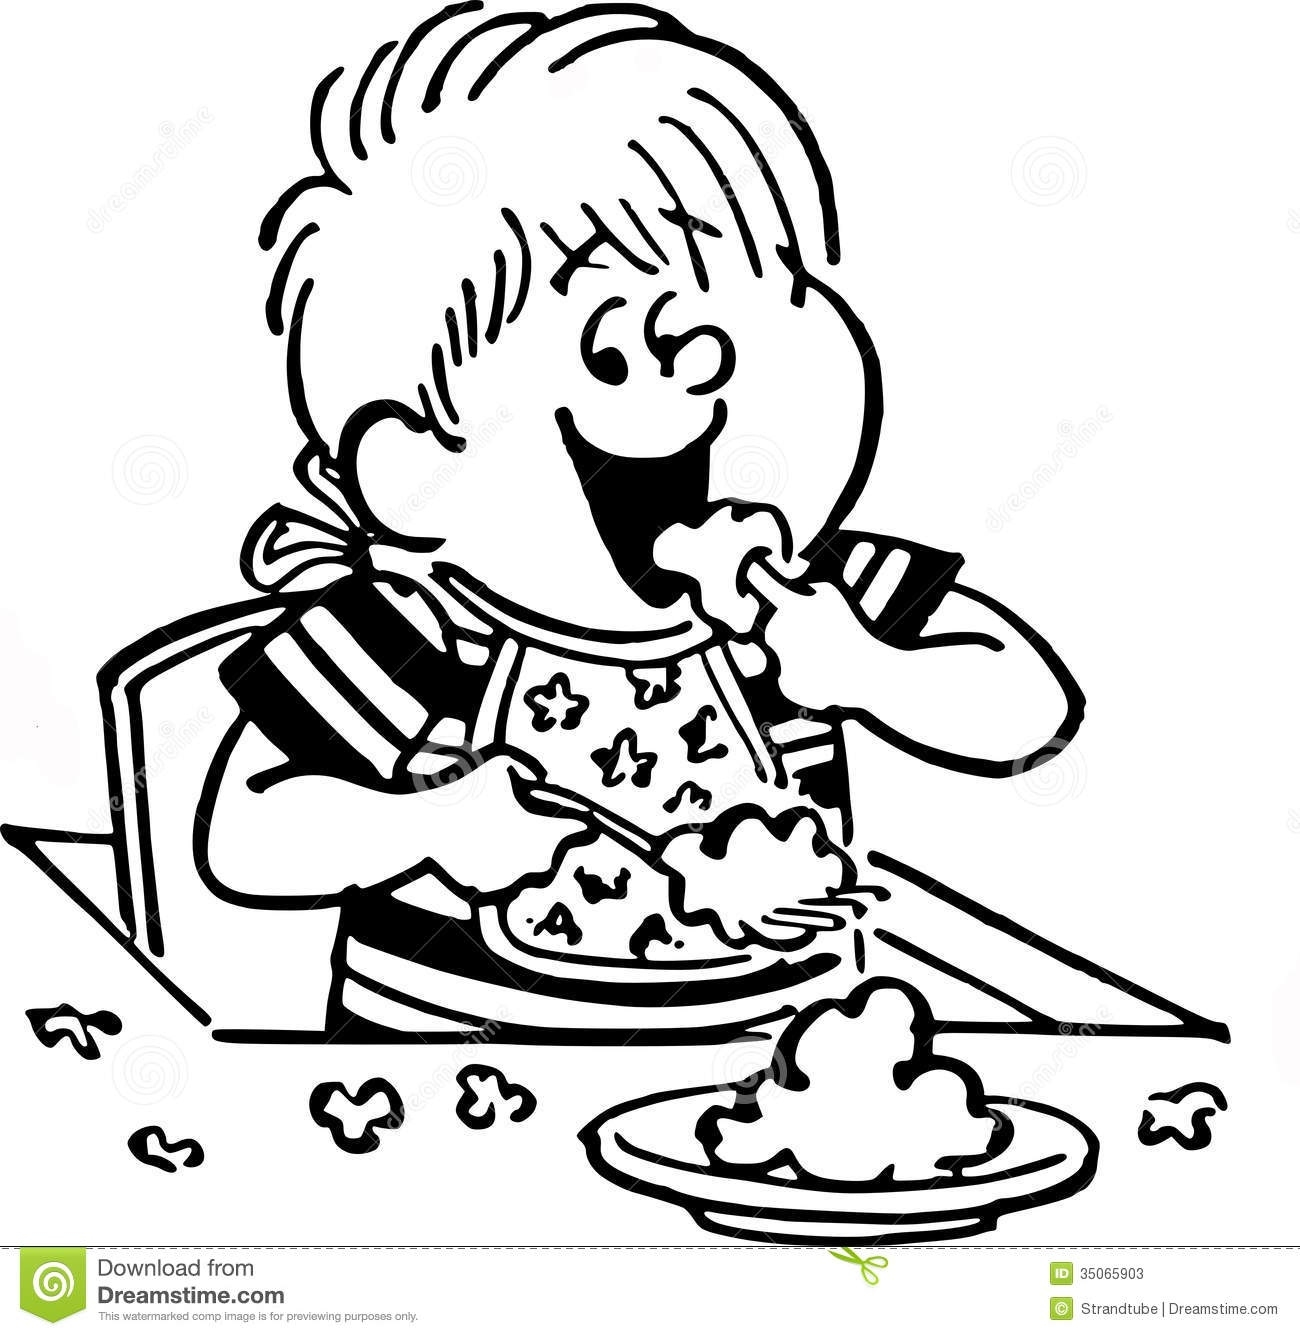 Clipart Eating Black And White Pertaining To Dinner 20 Of.